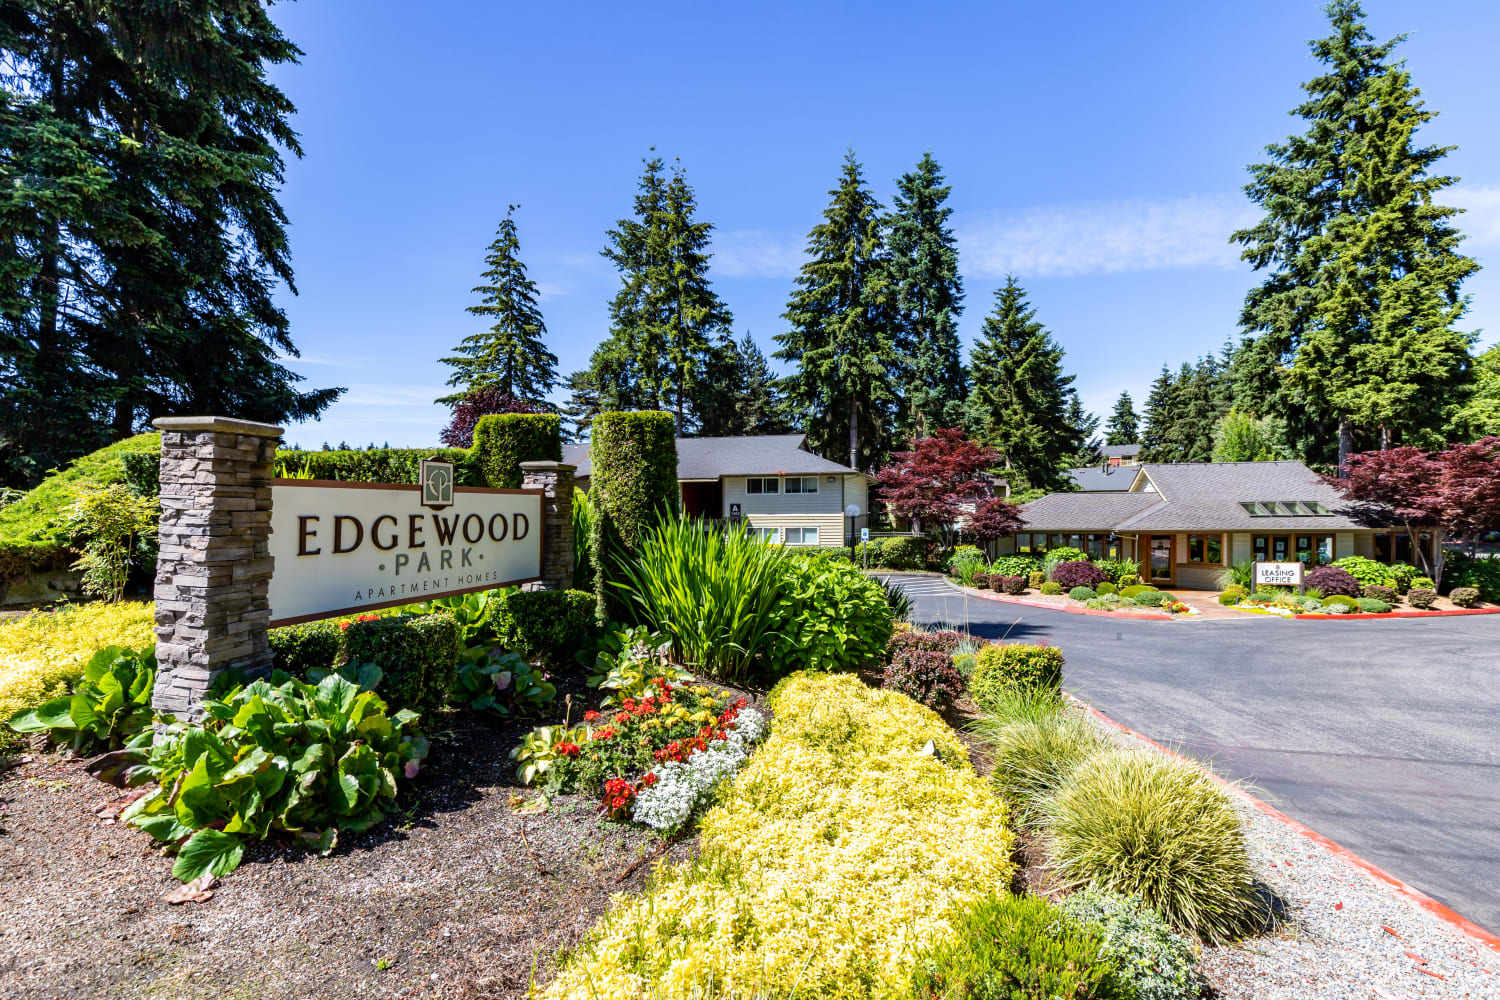 Community sign at entrance to Edgewood Park Apartments in Bellevue, Washington